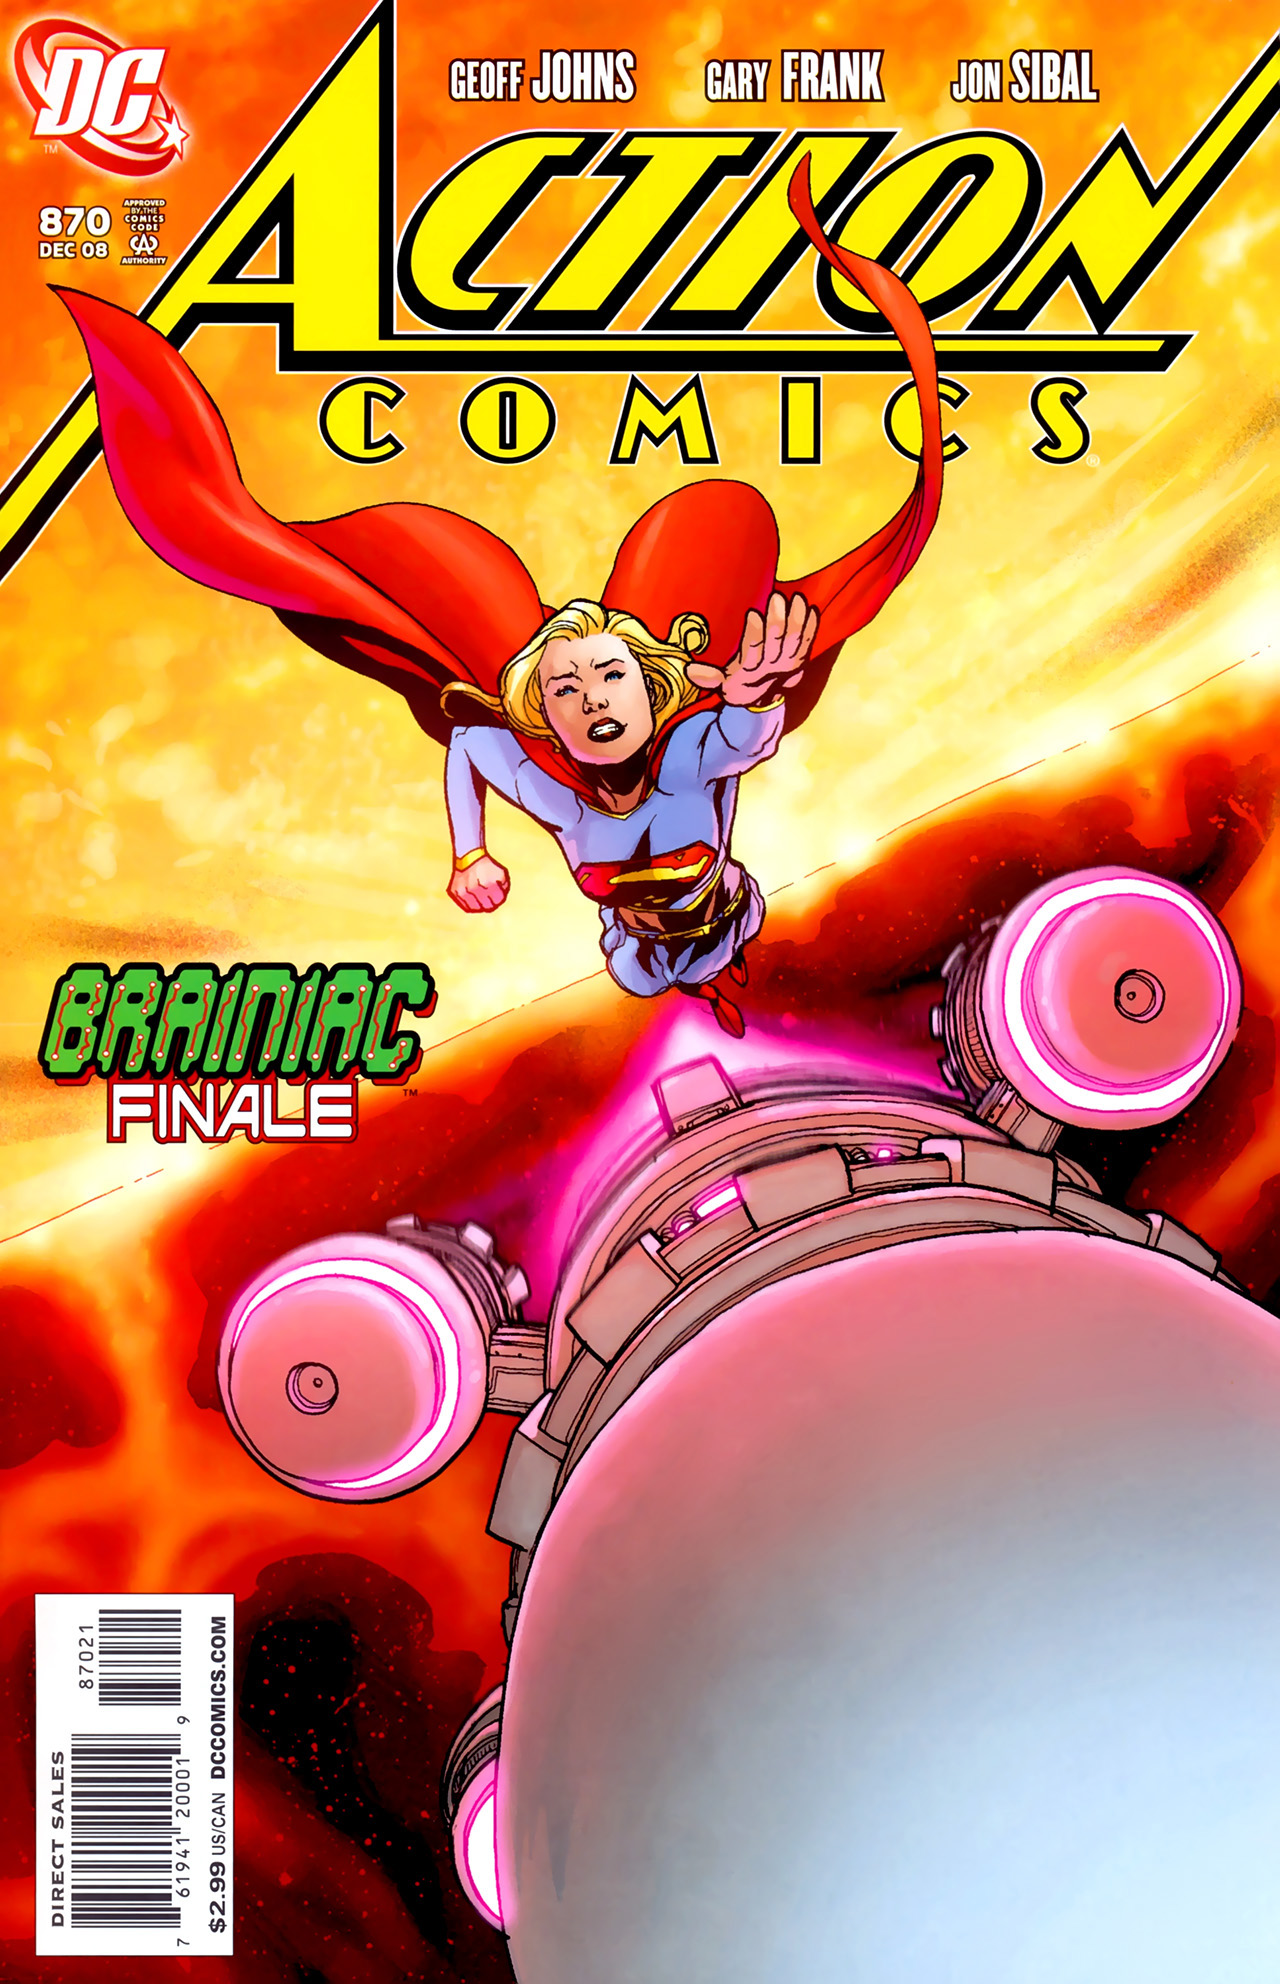 Read online Action Comics (1938) comic -  Issue #870 - 1